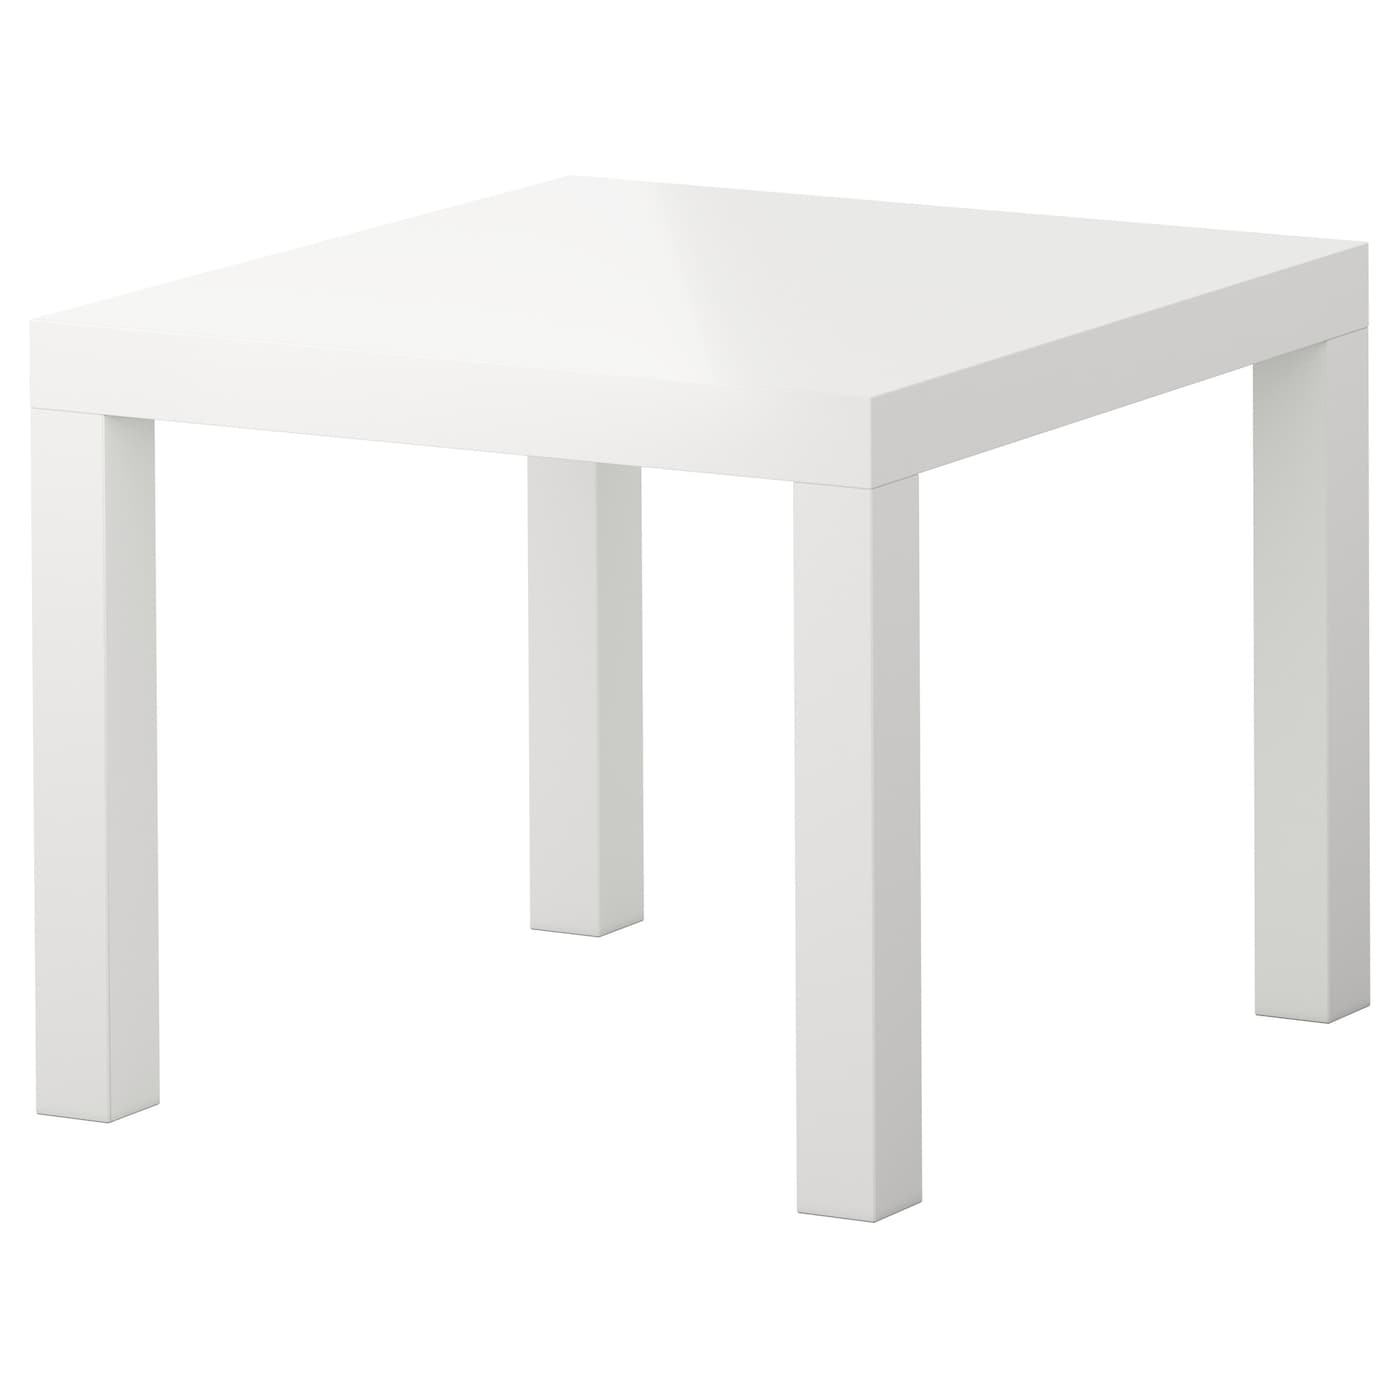 Lack side table high gloss white 55x55 cm ikea for White end table